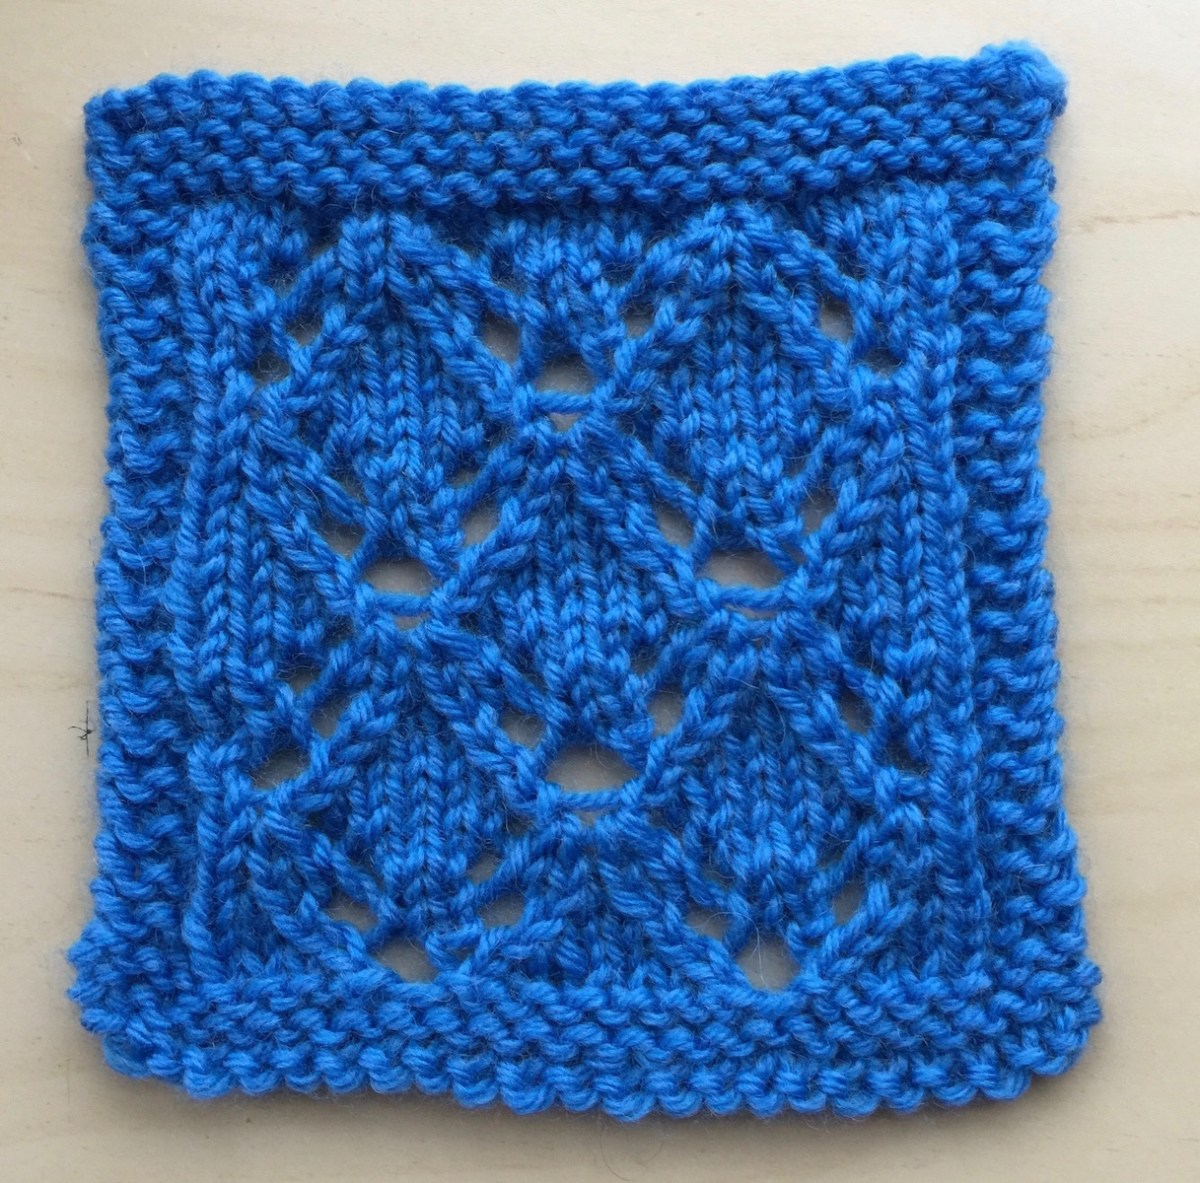 Swatch: Mira Lace (mult of 8 sts +2; 16 rows)